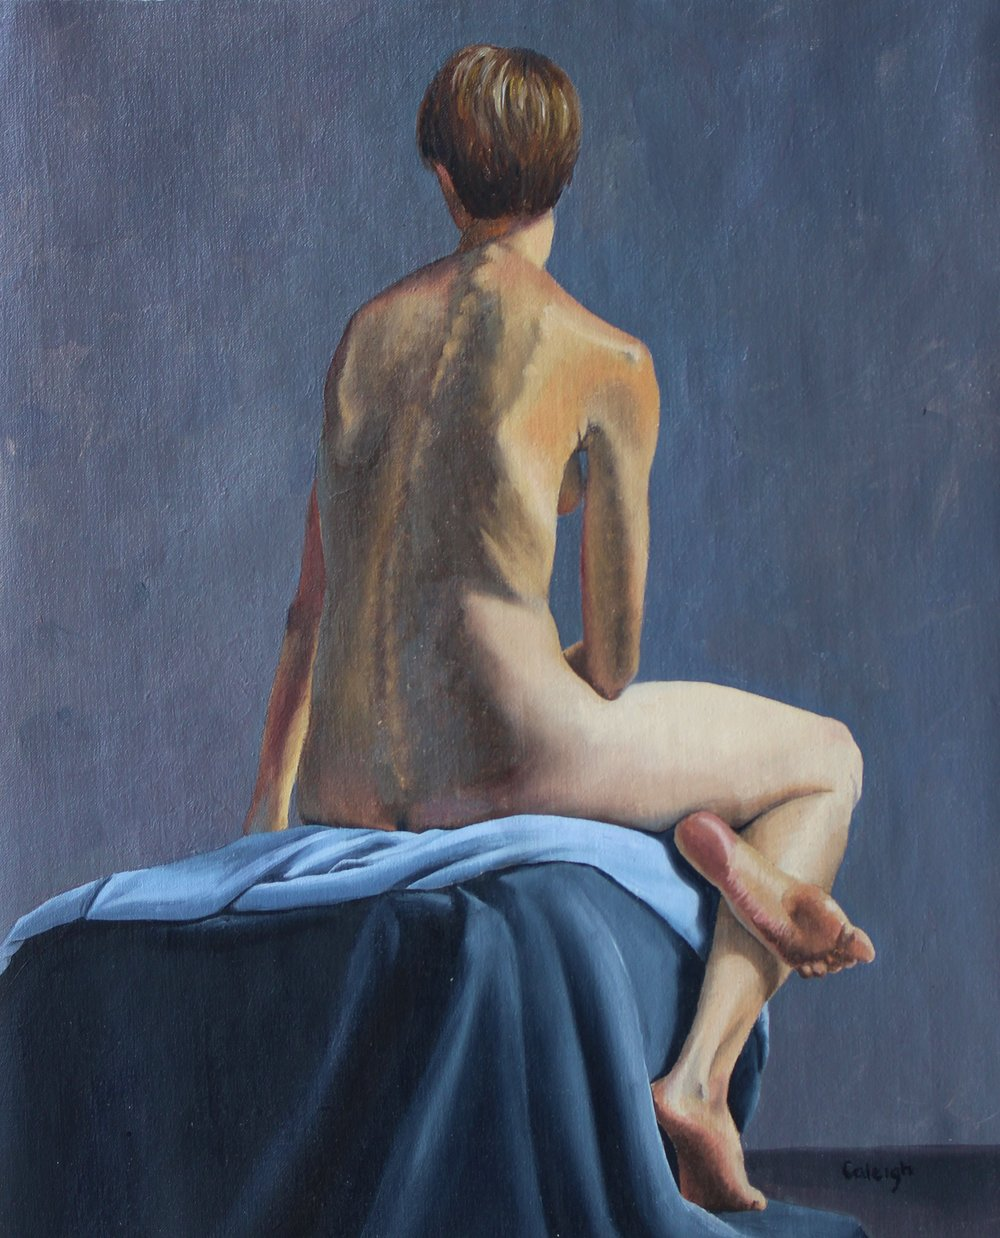 Chiara I   oil on linen  15 x 12.5 inches  2015